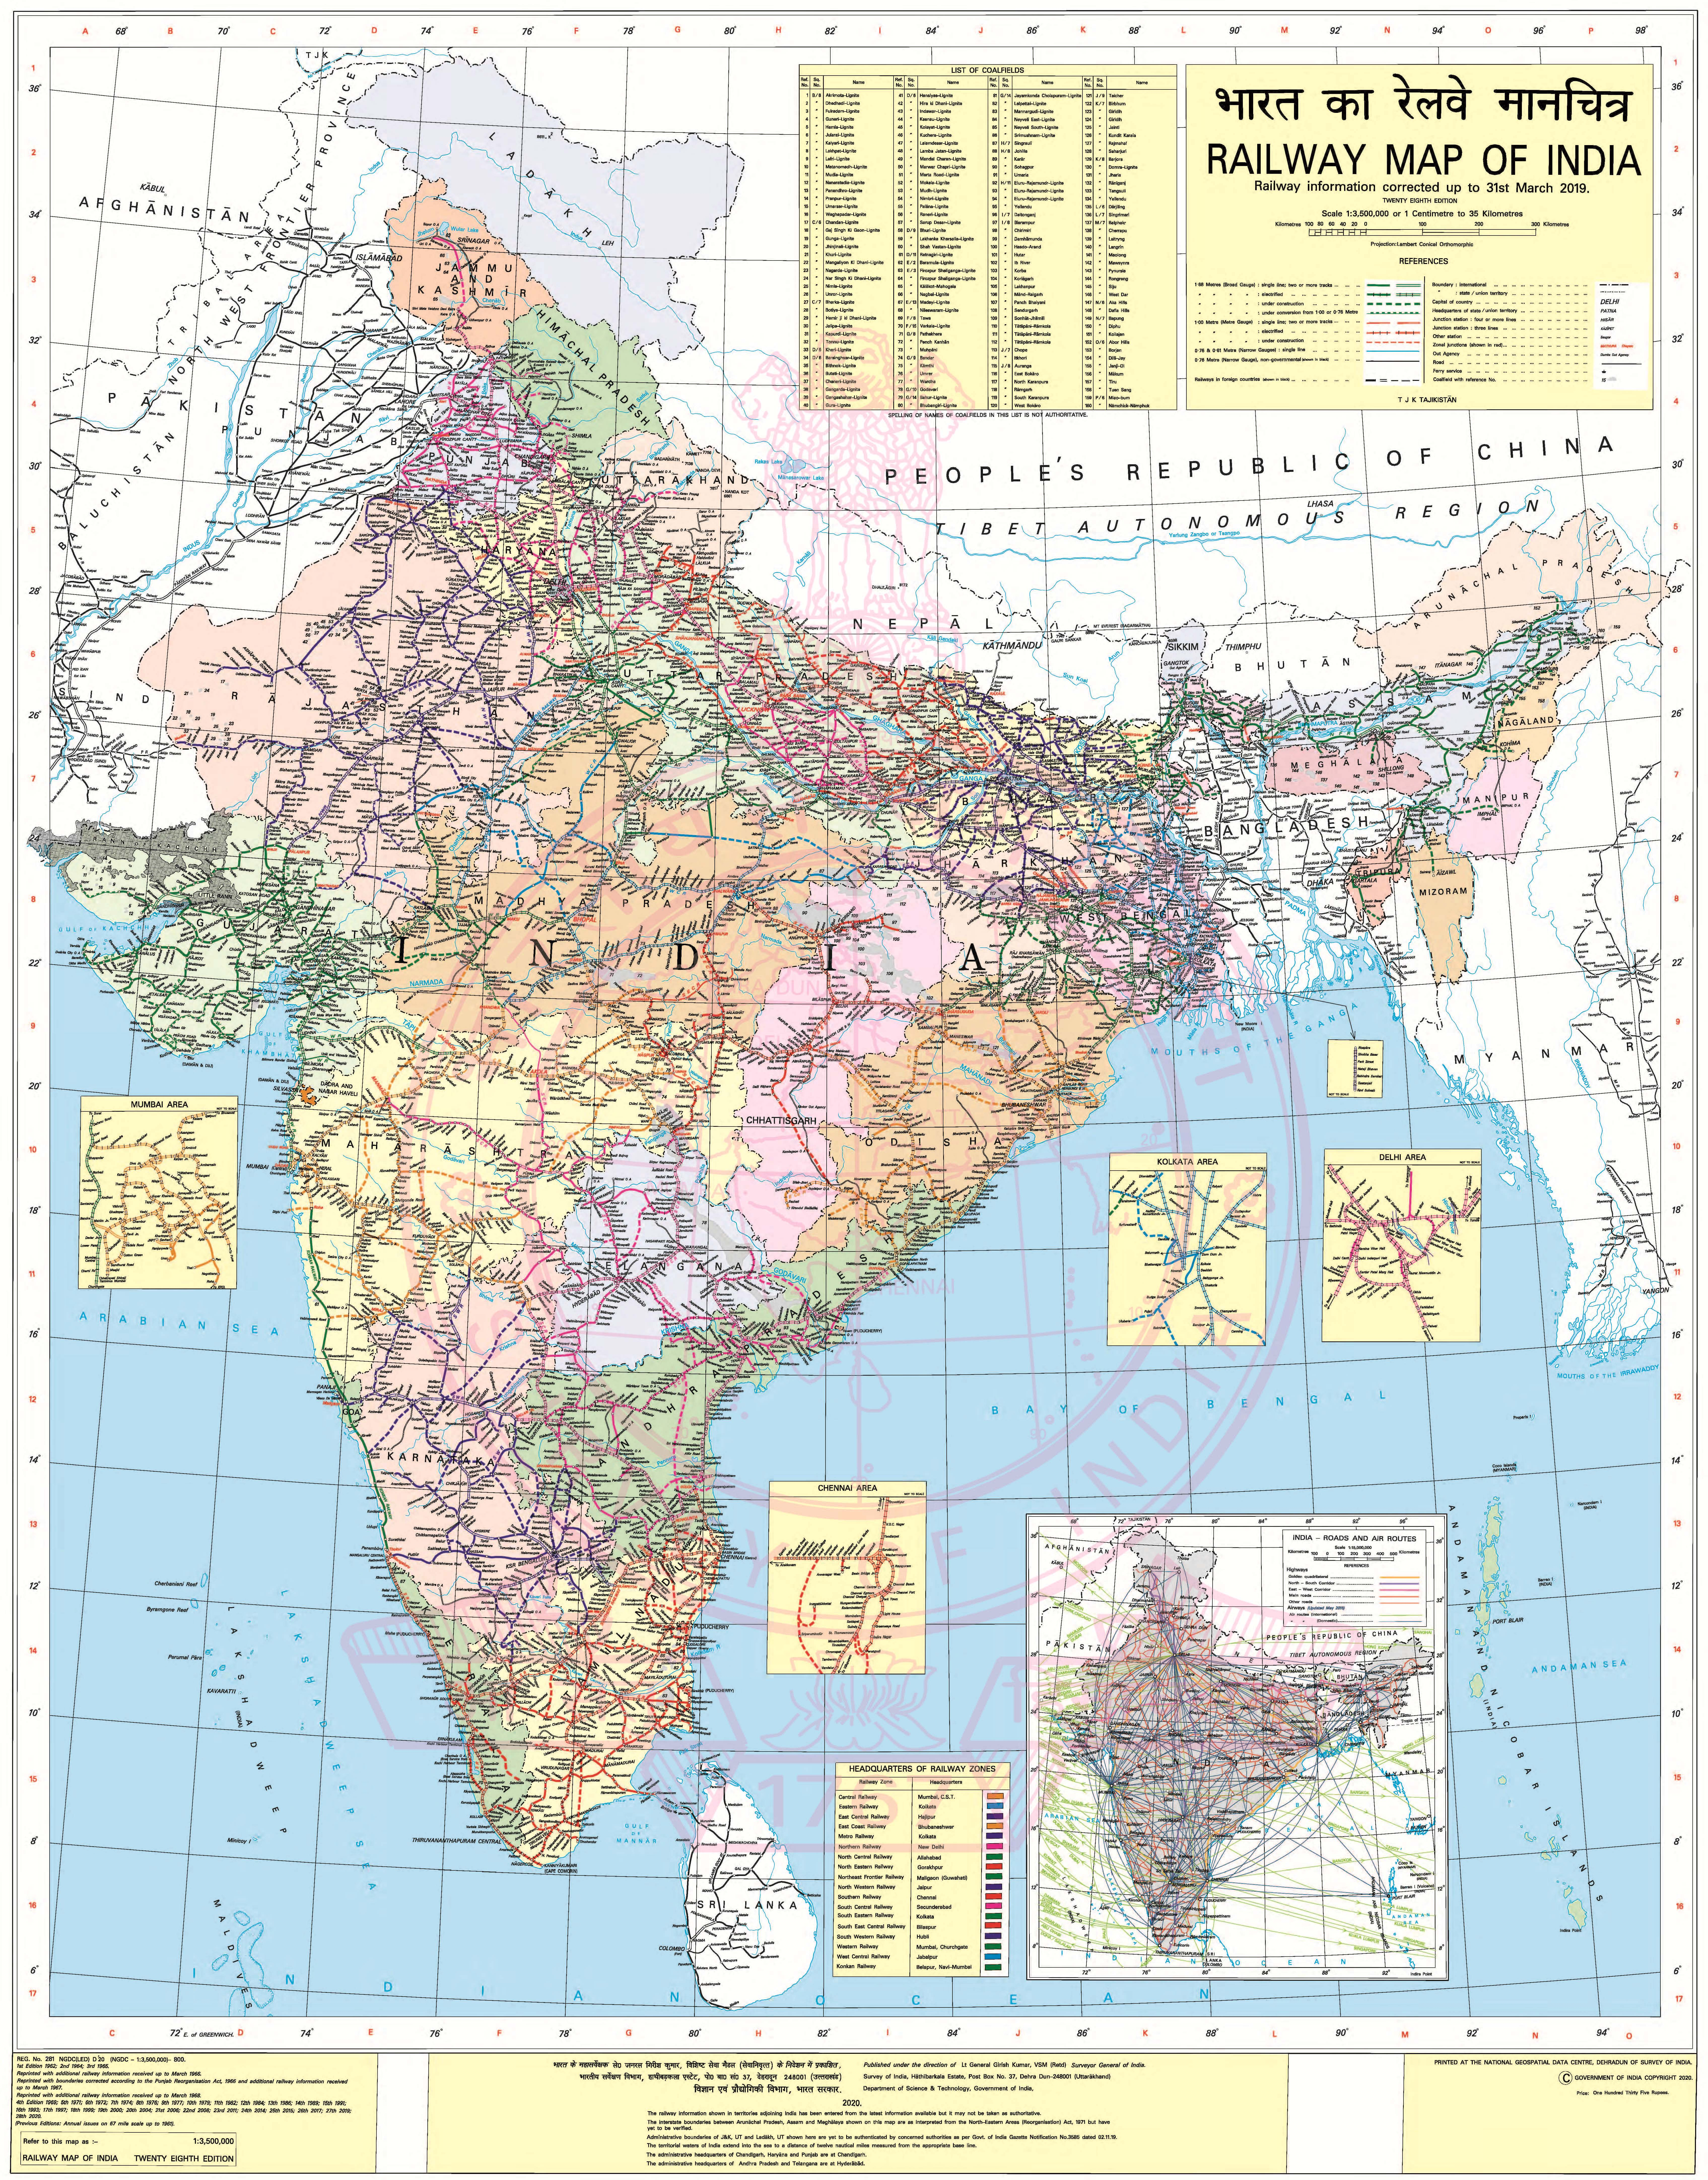 india map train route Railway Map Of India Survey Of India india map train route